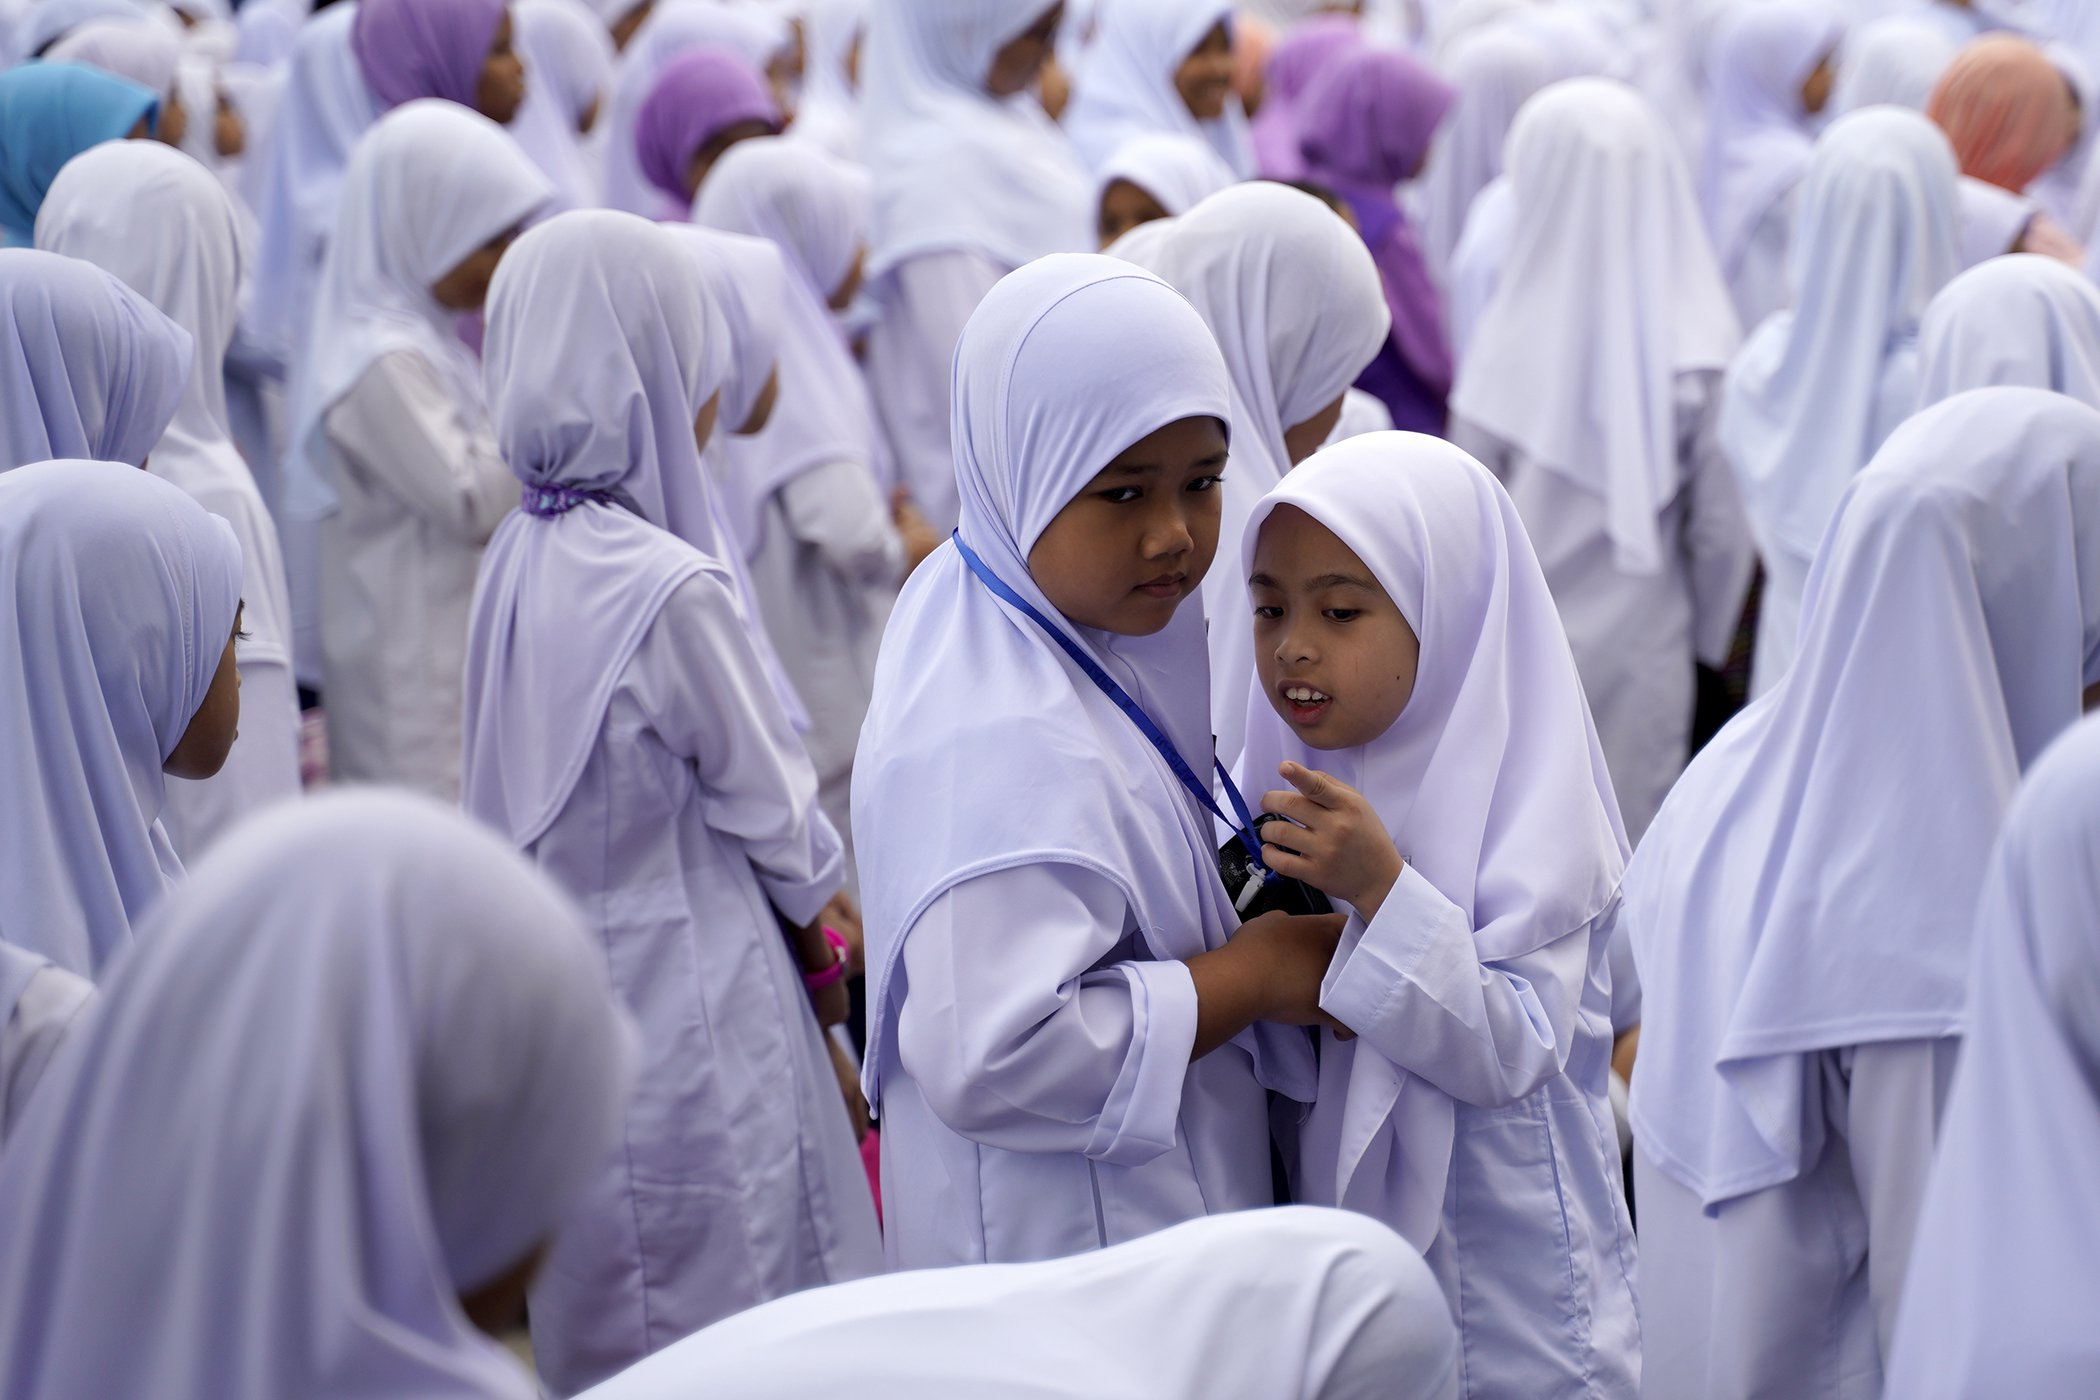 Education-Malaysia-Girls.jpg